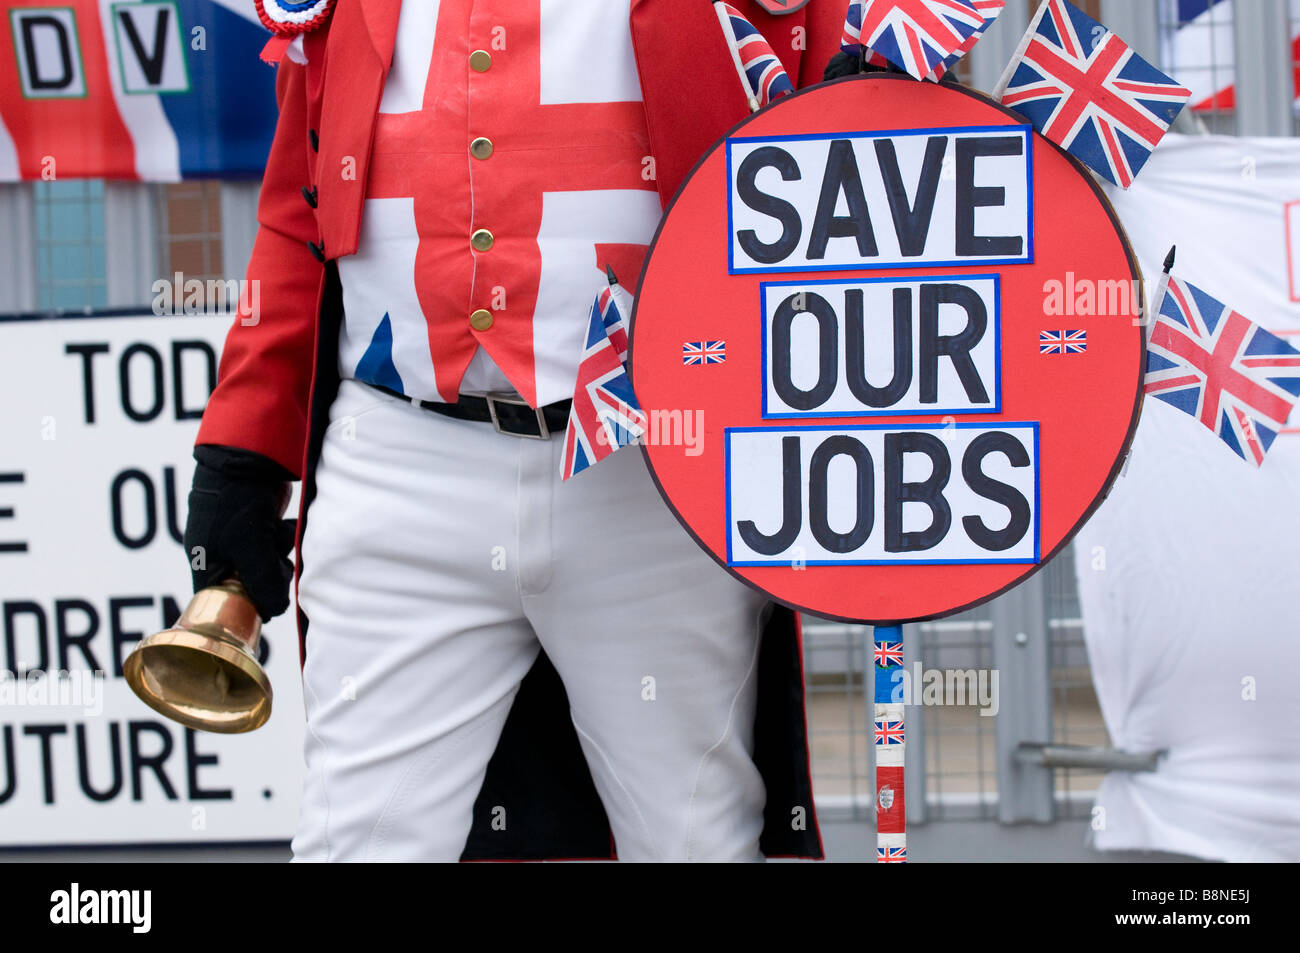 John Bull demonstrates to save British jobs outside the gates of the LDV van factory in Birmingham, West Midlands, - Stock Image